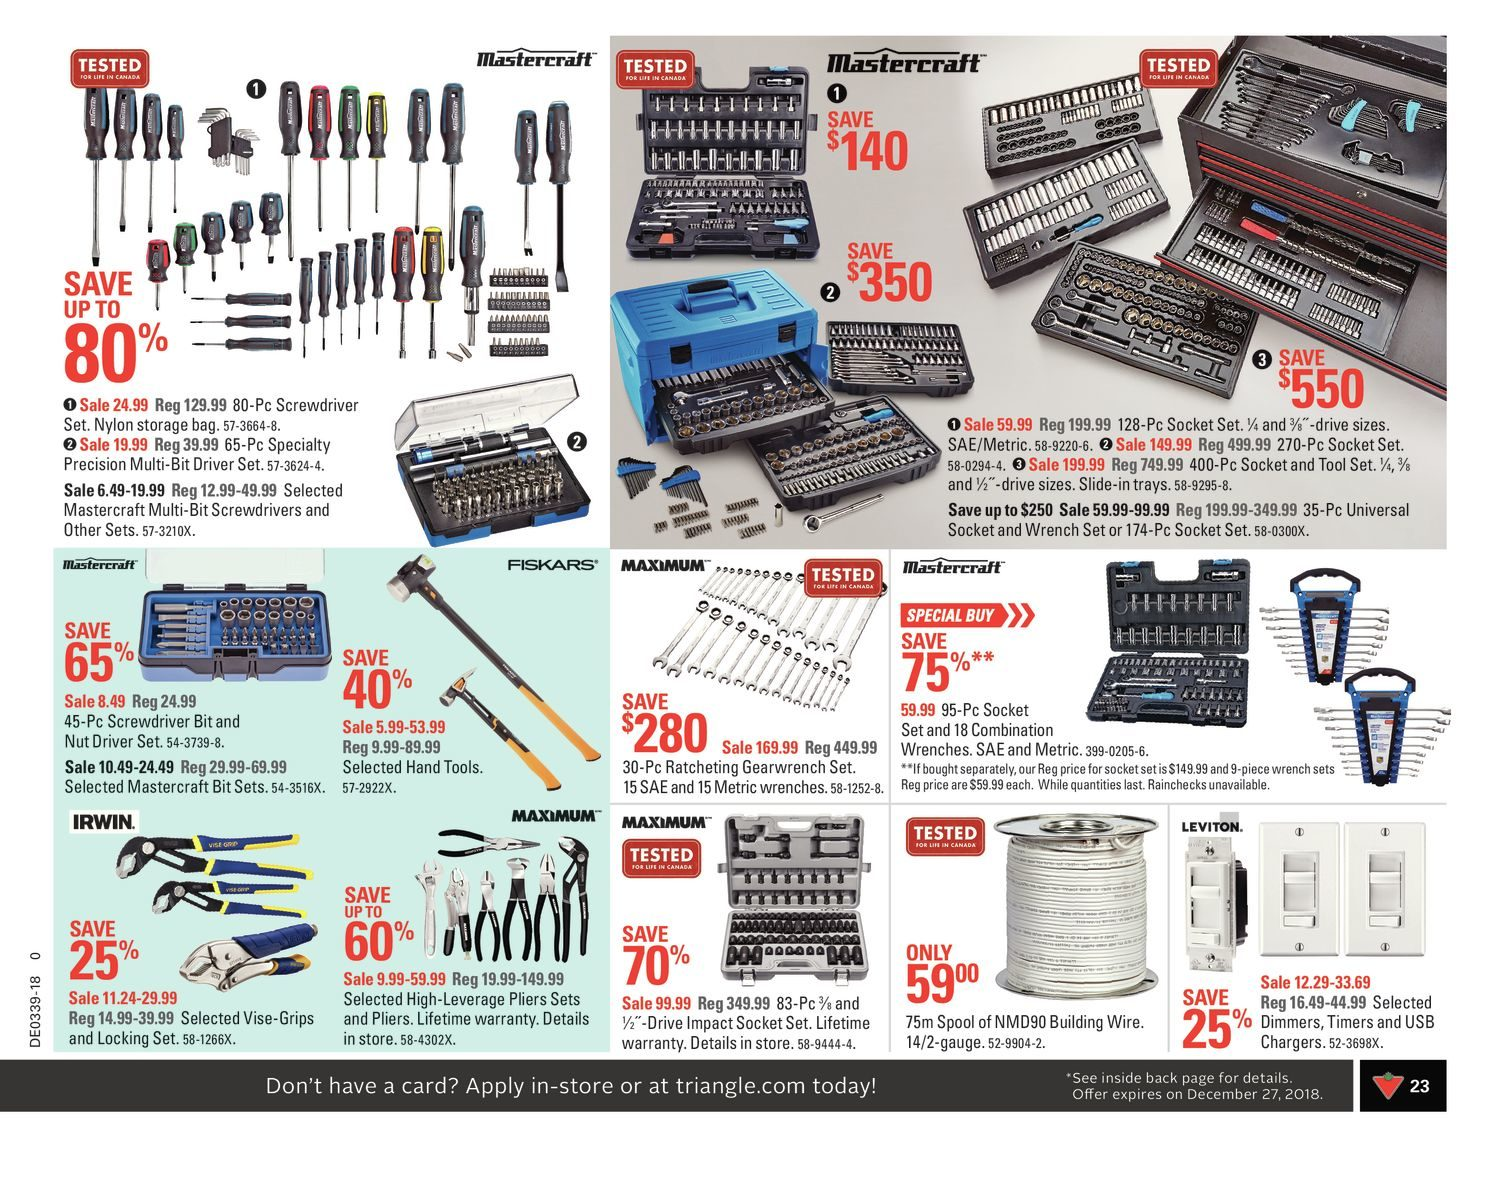 Canadian Tire Weekly Flyer All For Fall Sep 21 27 Scosche Frosted Flux Power Wire 4 Gauge Blue By